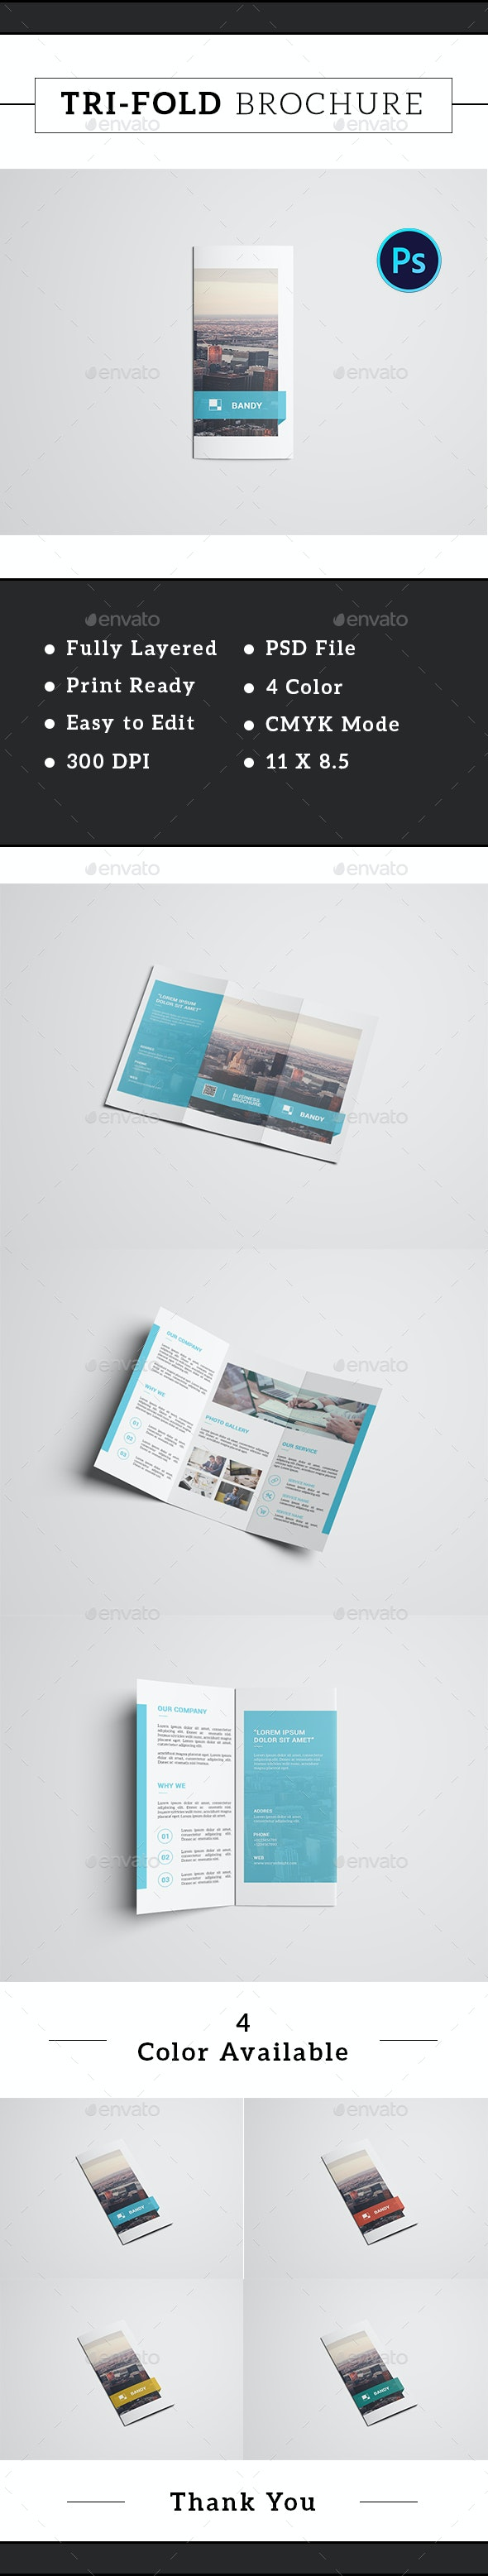 Trifold Corporate Brochure-V297 - Corporate Brochures